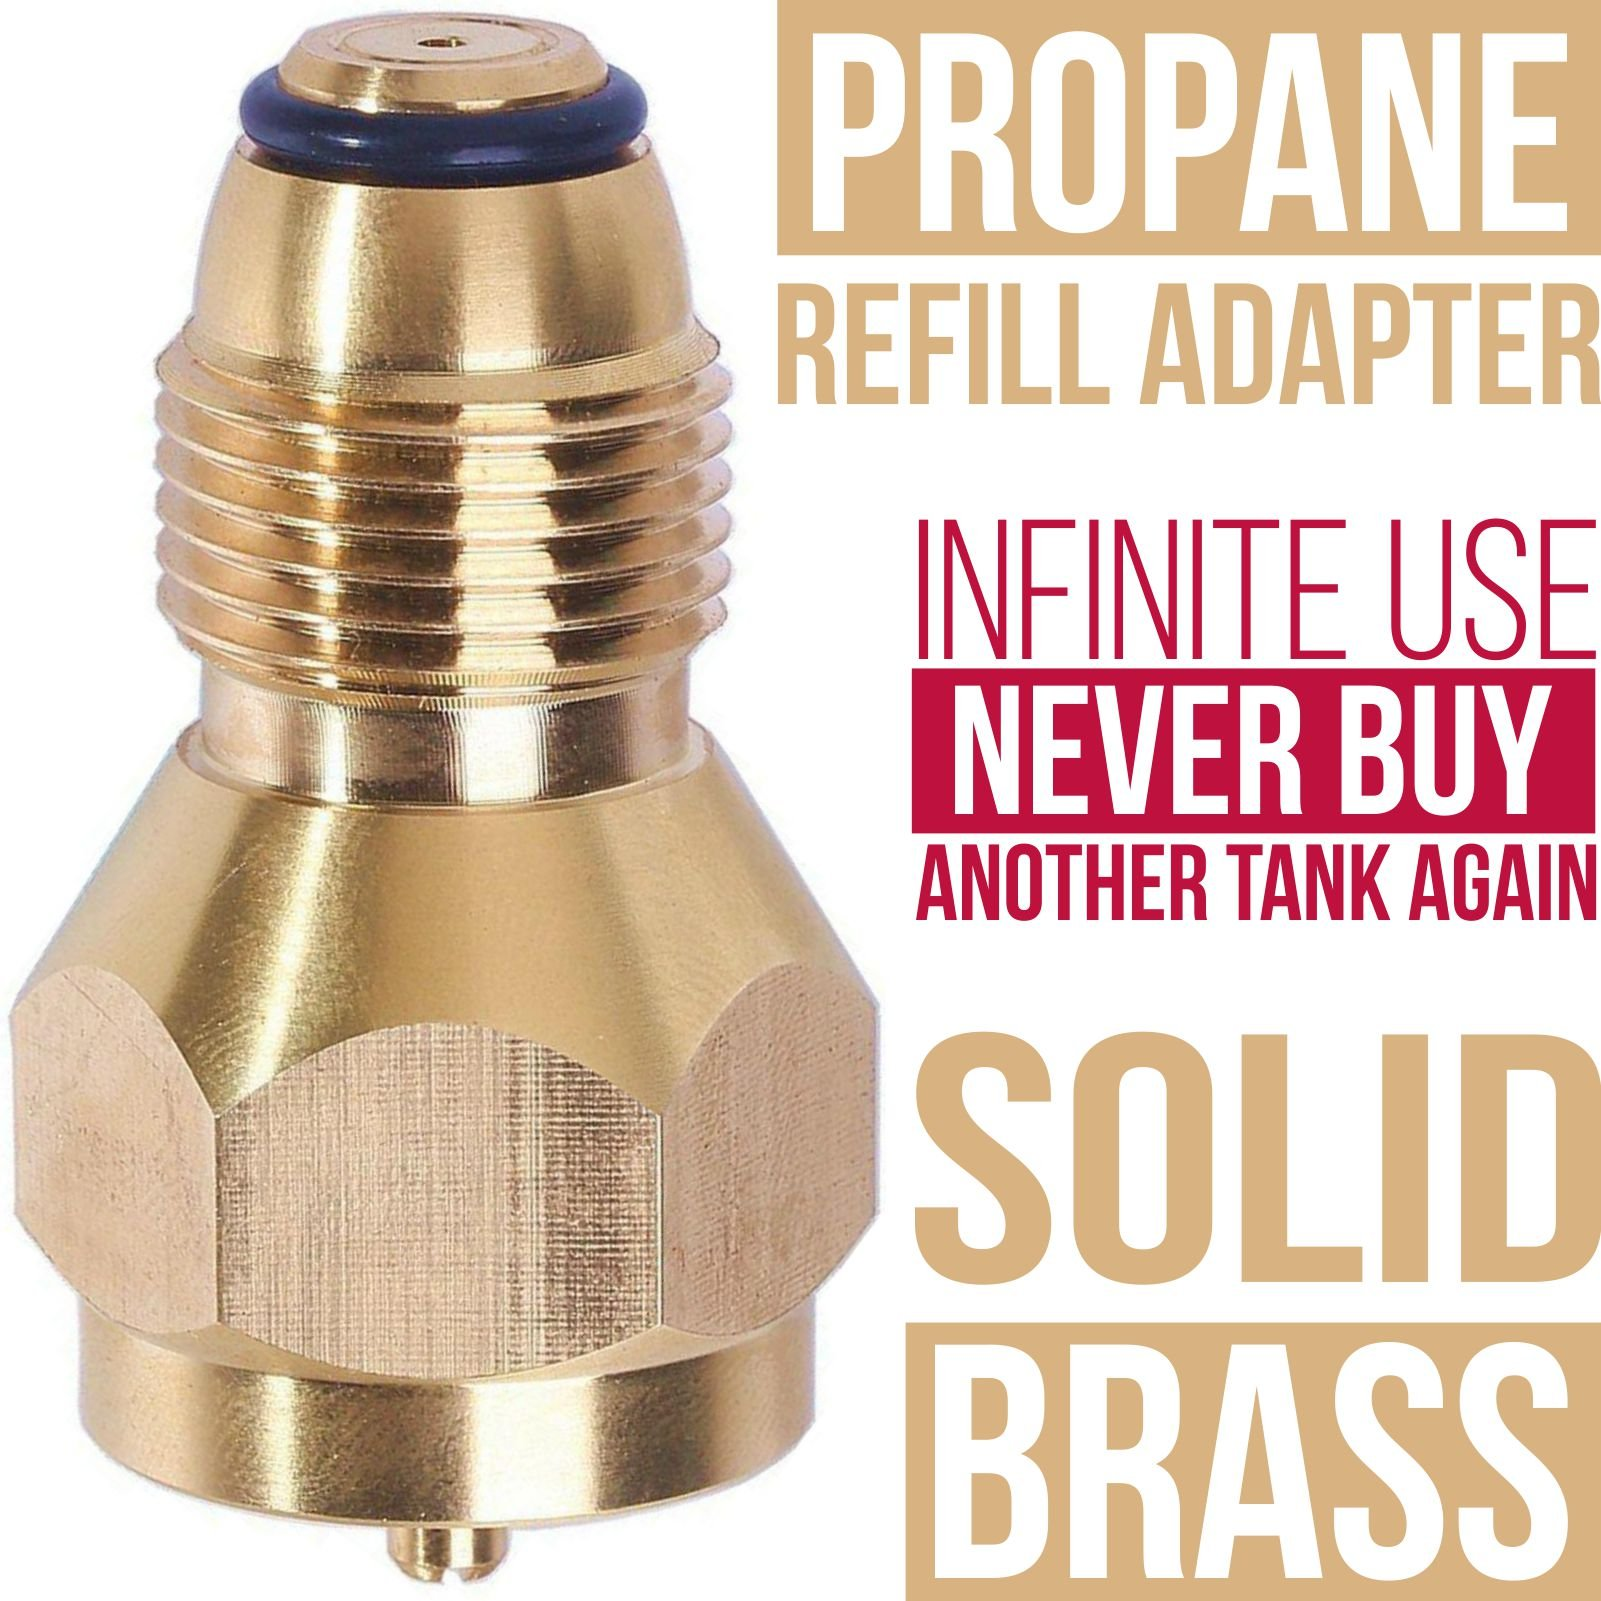 Grandarëk Propane Refill Adapter Lp Gas 1 Lb Cylinder Tank Coupler Heater Coleman Bottles 100% Solid BRASS for Ice Fishermen, mountain men Outdoorsmen, and all Campers and power outages